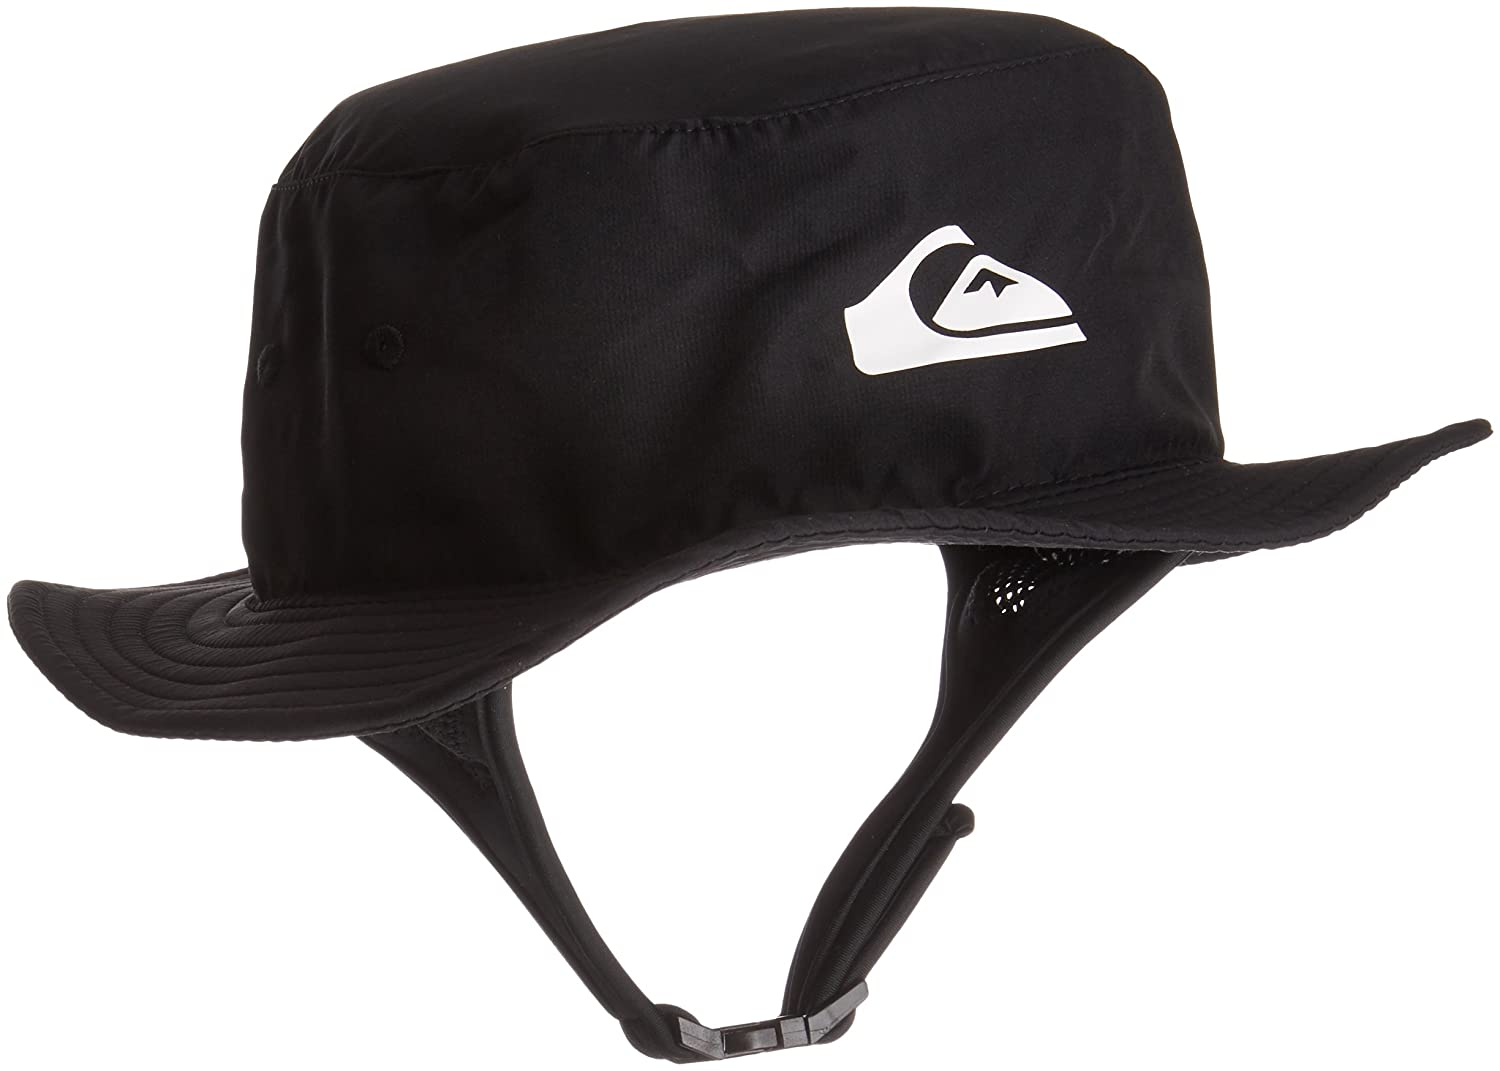 Quiksilver Bushmaster Surf Sun Protection Bucket Hat Black L/XL AQYHA03878